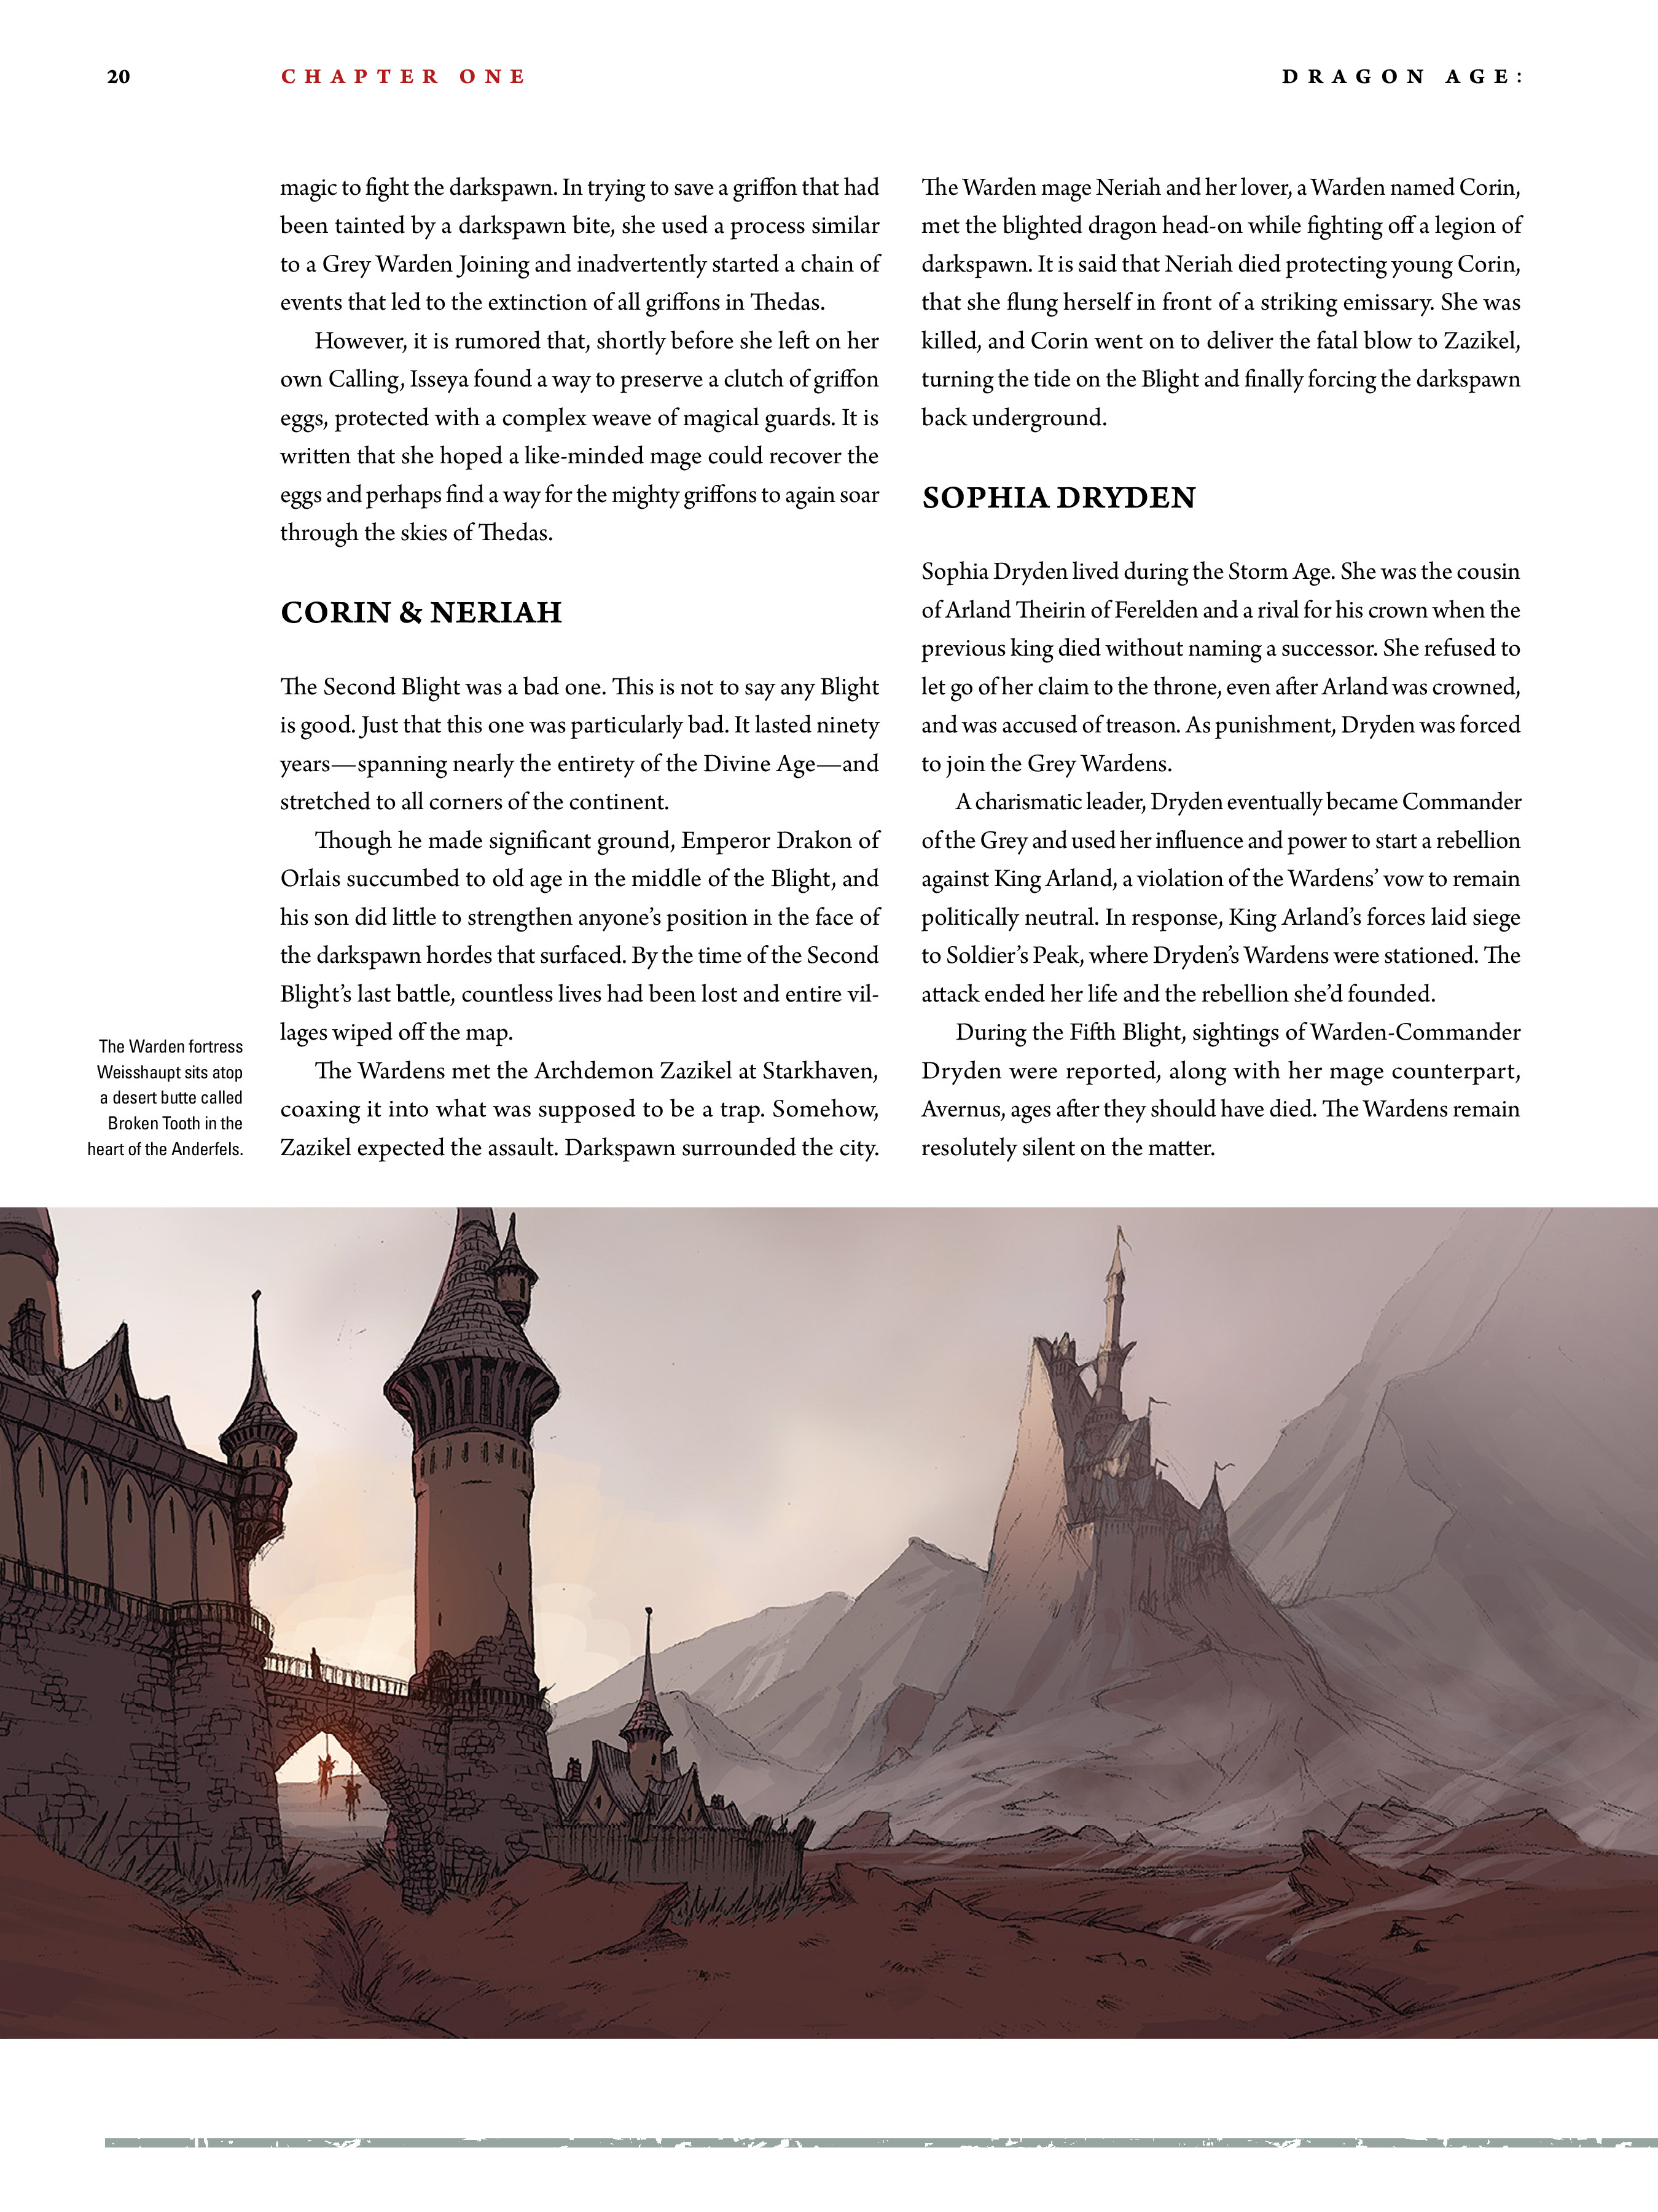 Read online Dragon Age: The World of Thedas comic -  Issue # TPB 2 - 18